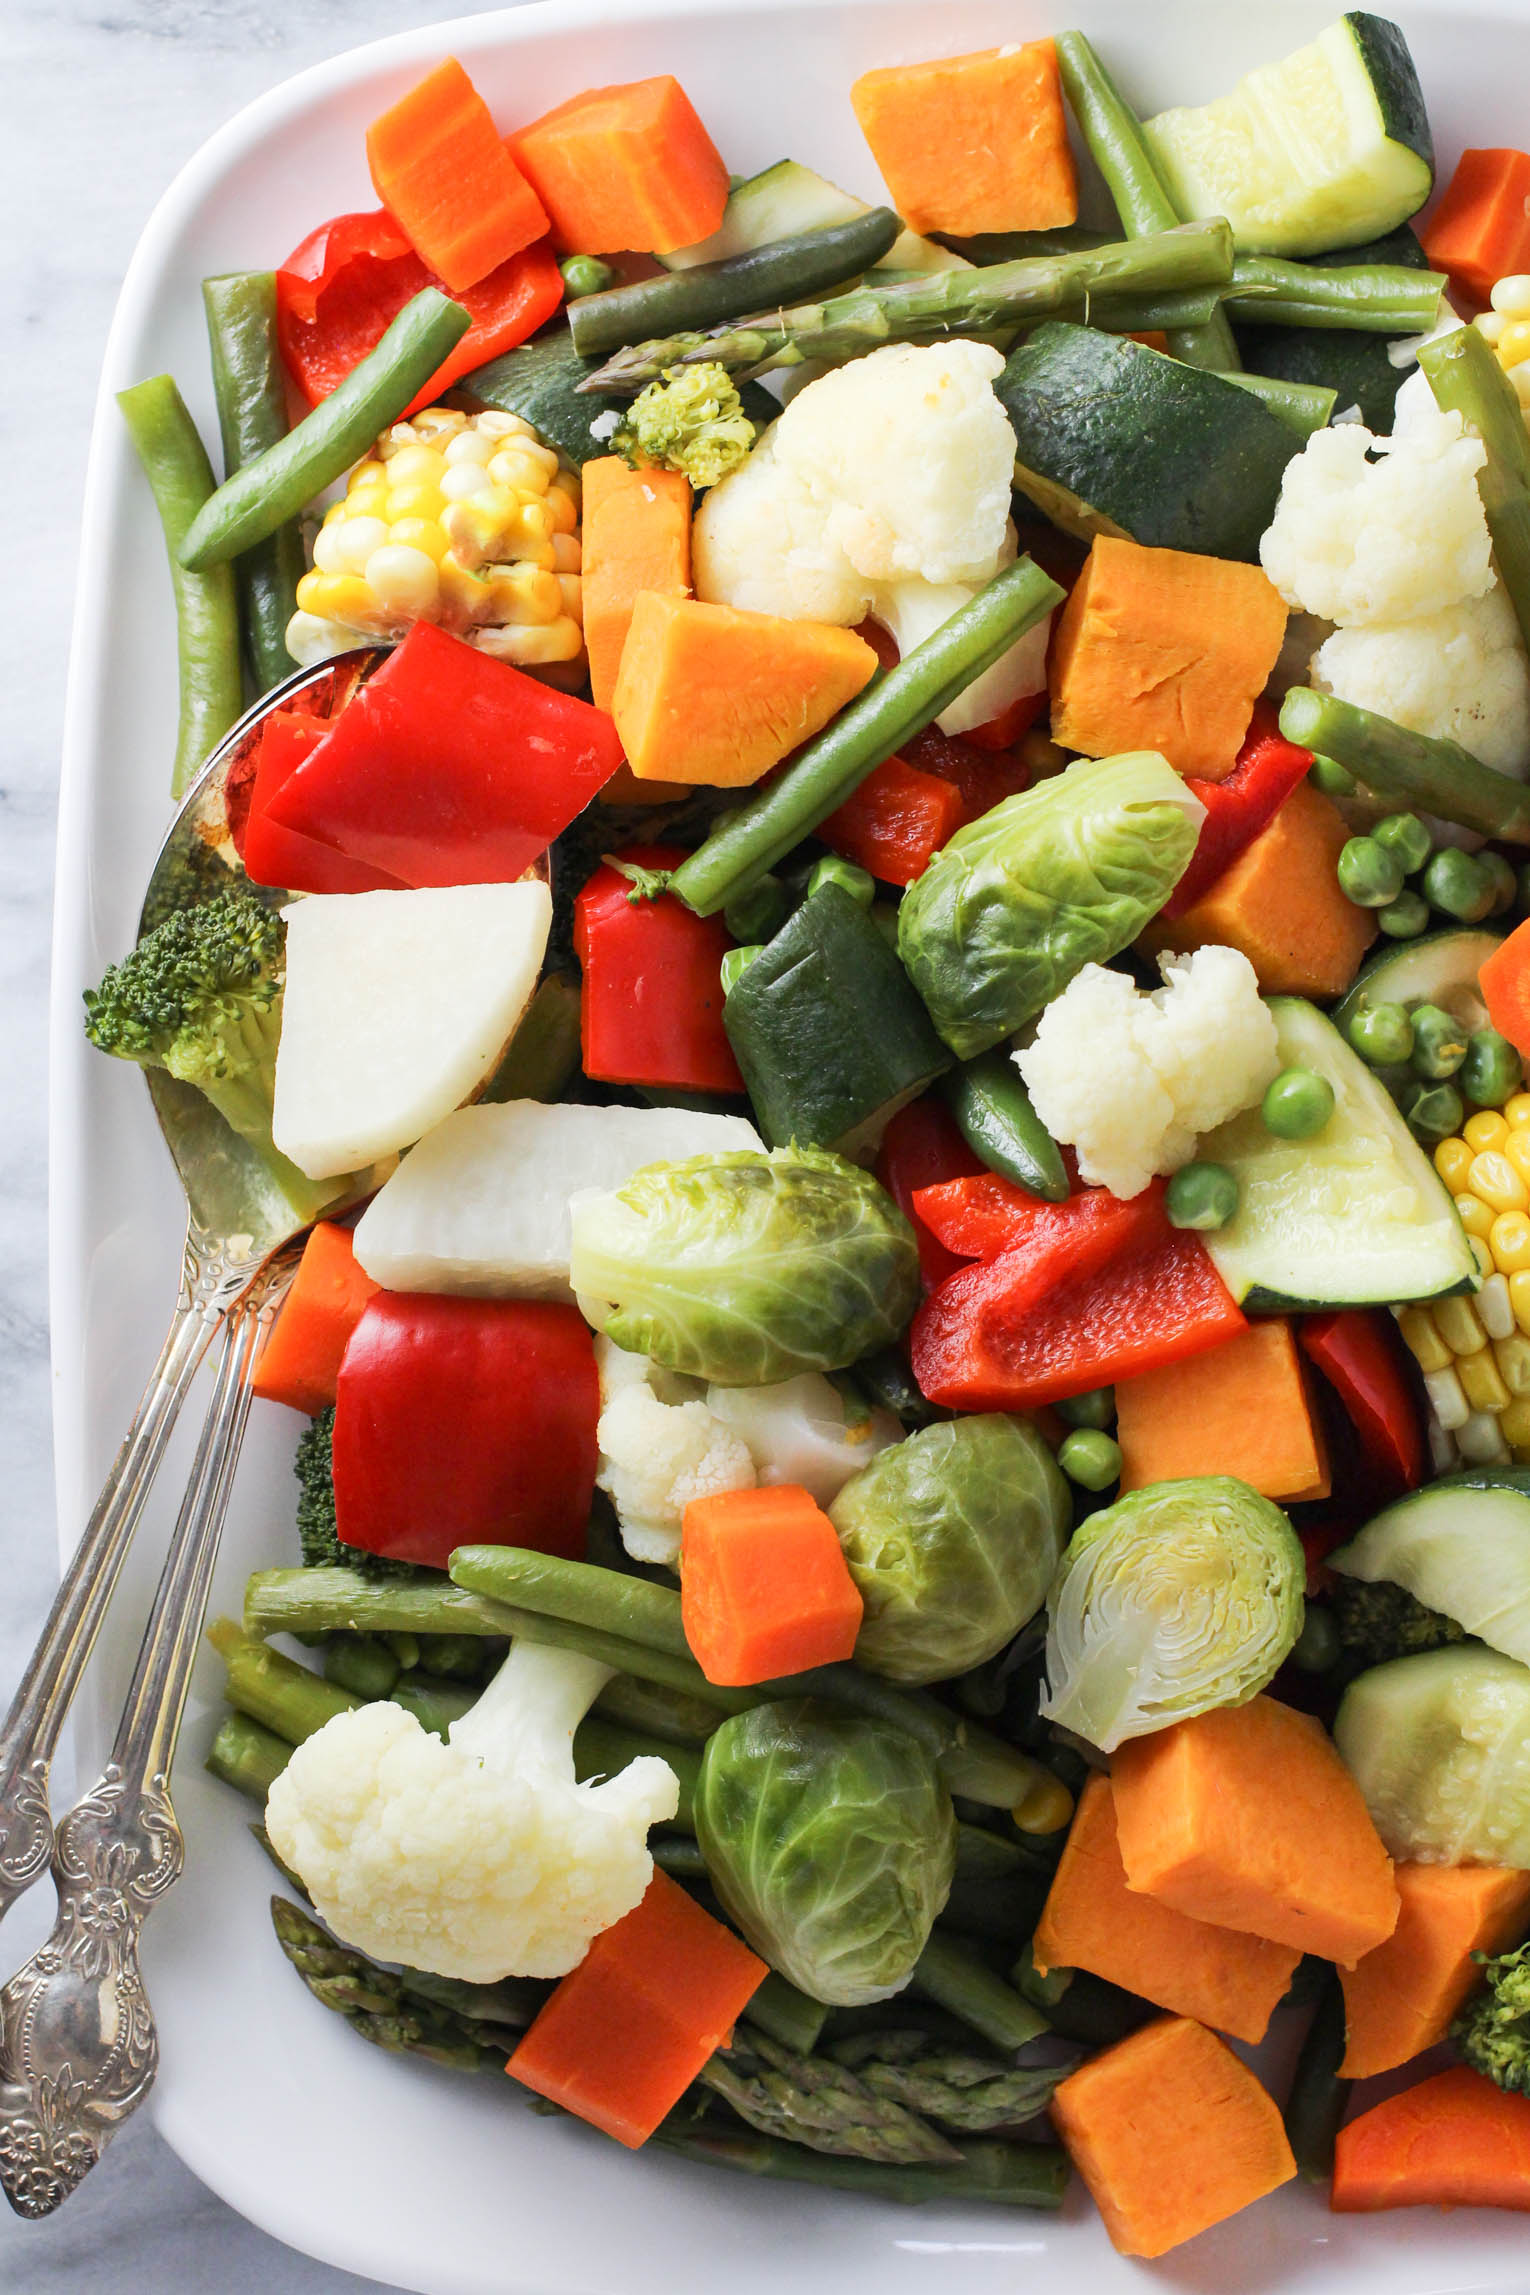 Instant Pot steamed vegetables on a white platter. Two silver serving spoons on the left side.